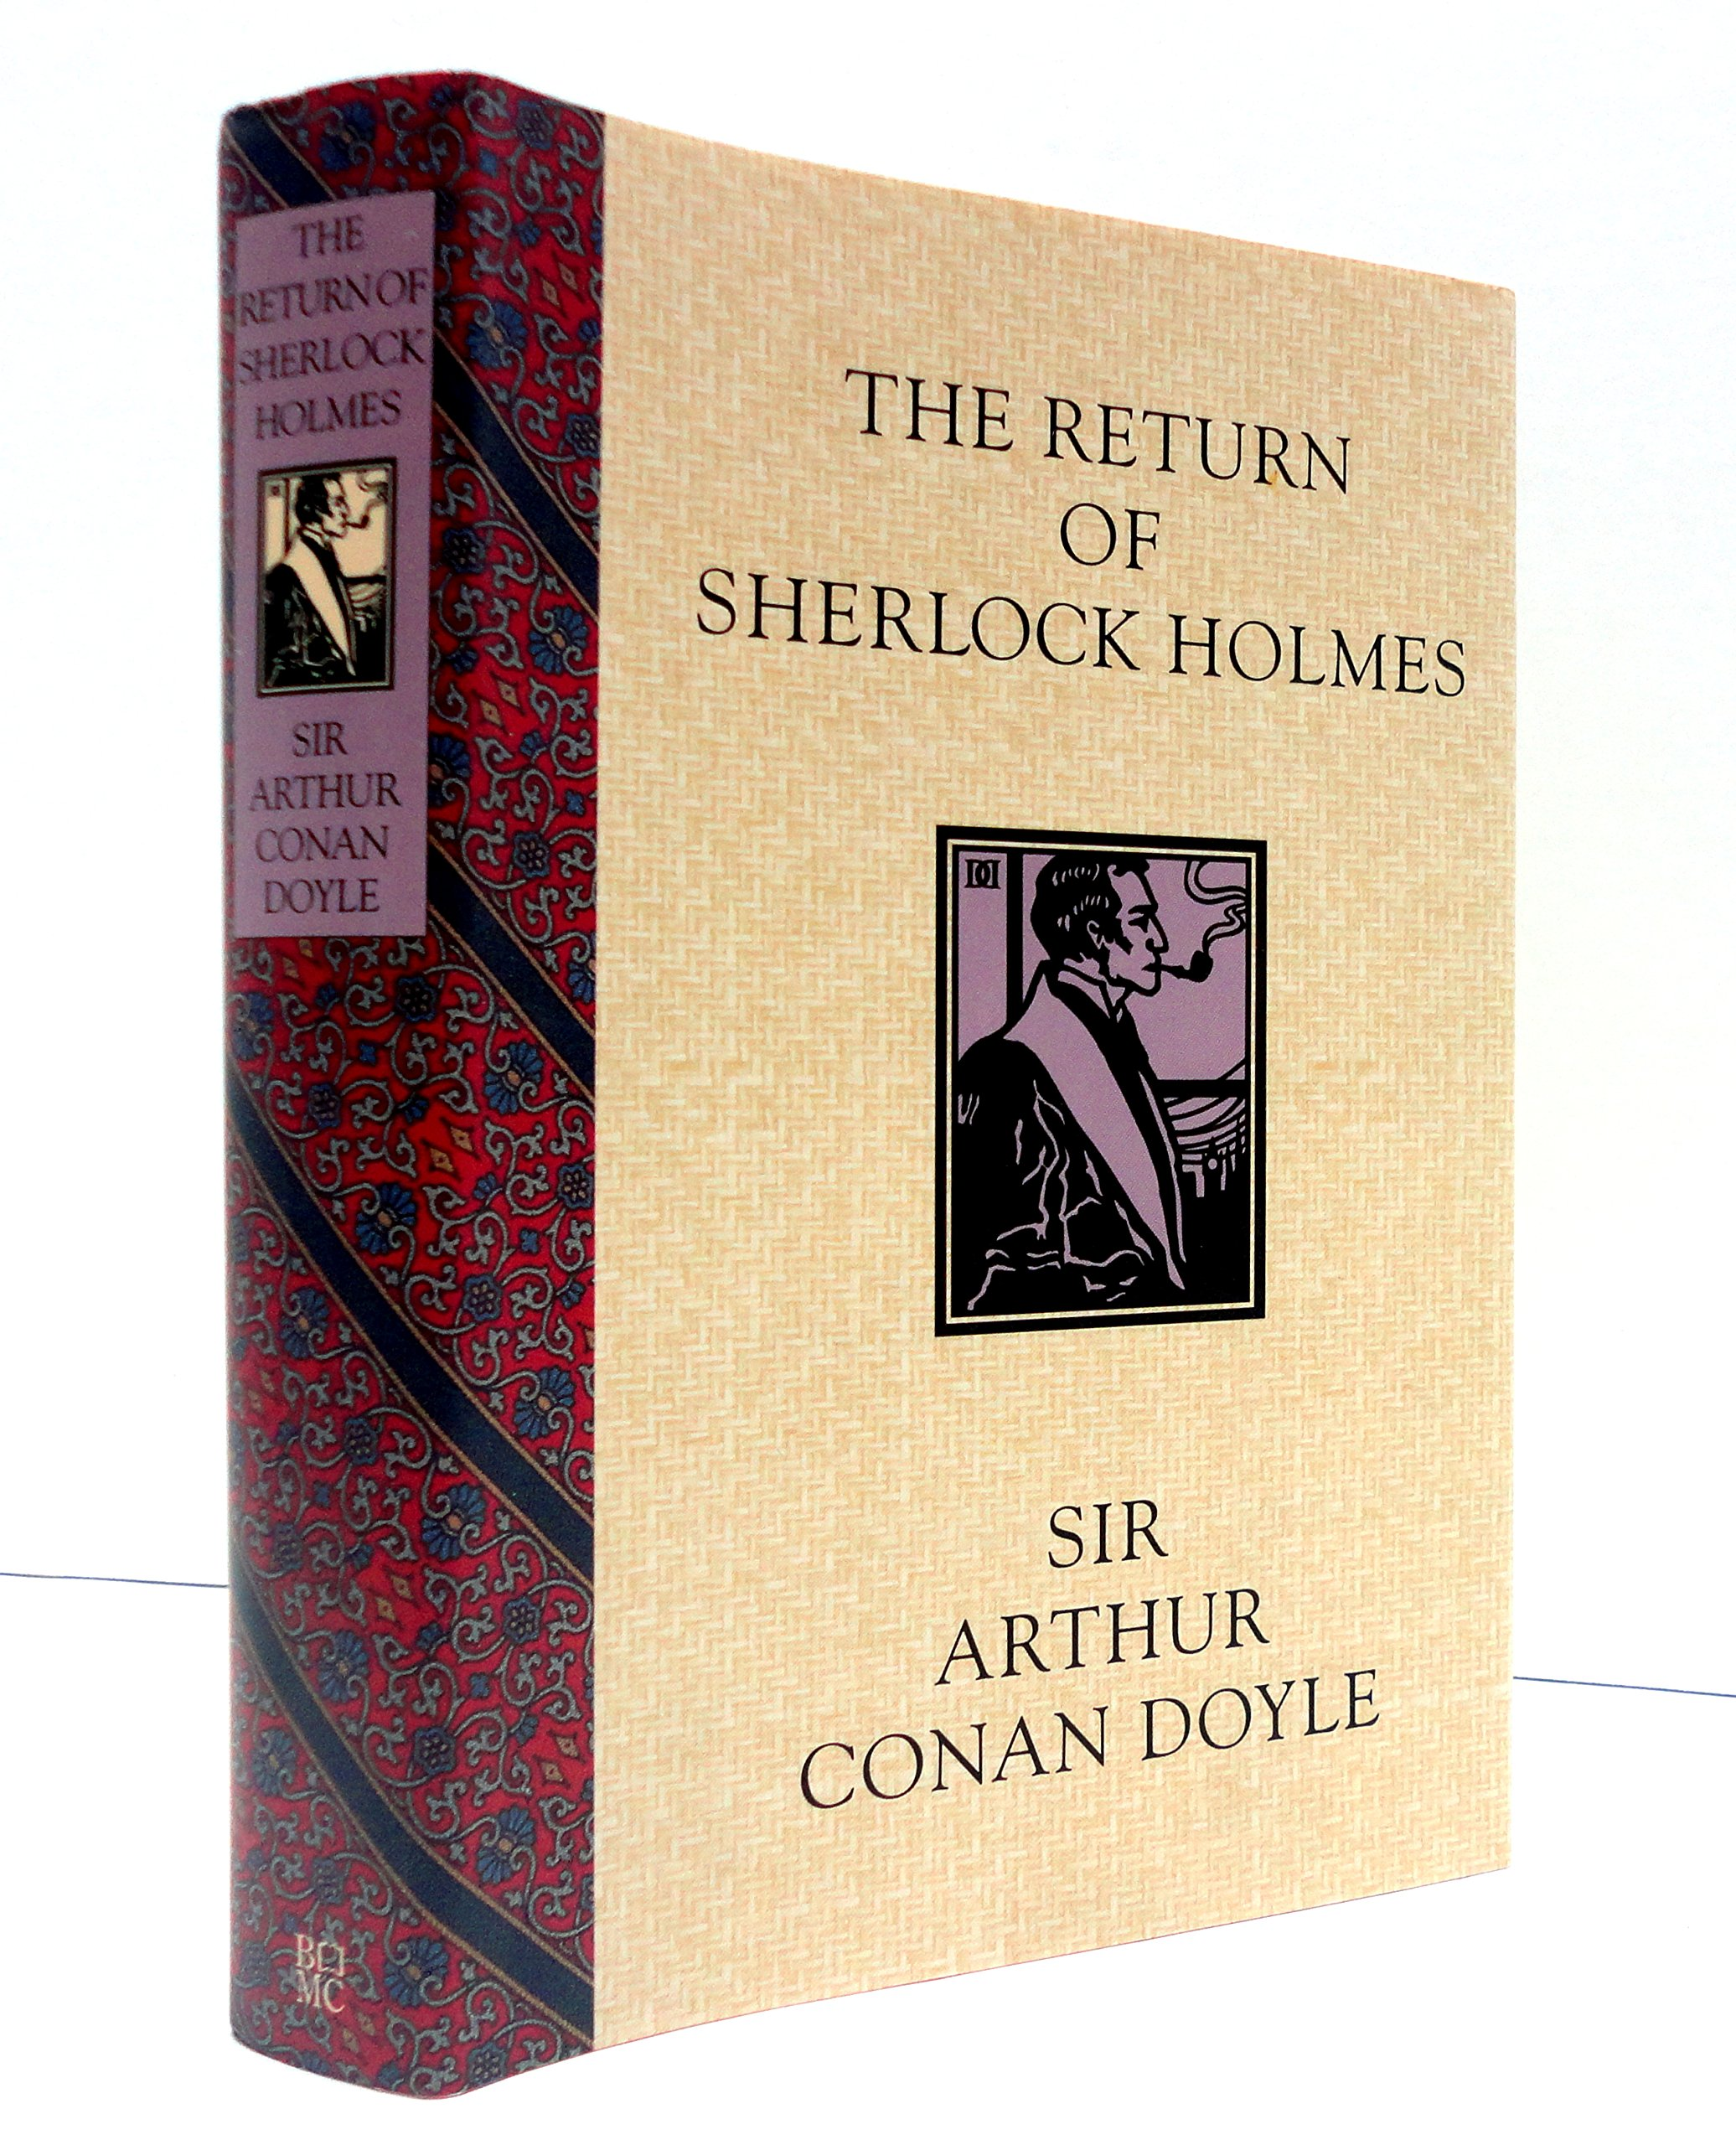 The Return of Sherlock Holmes, Sir Arthur Conan Doyle